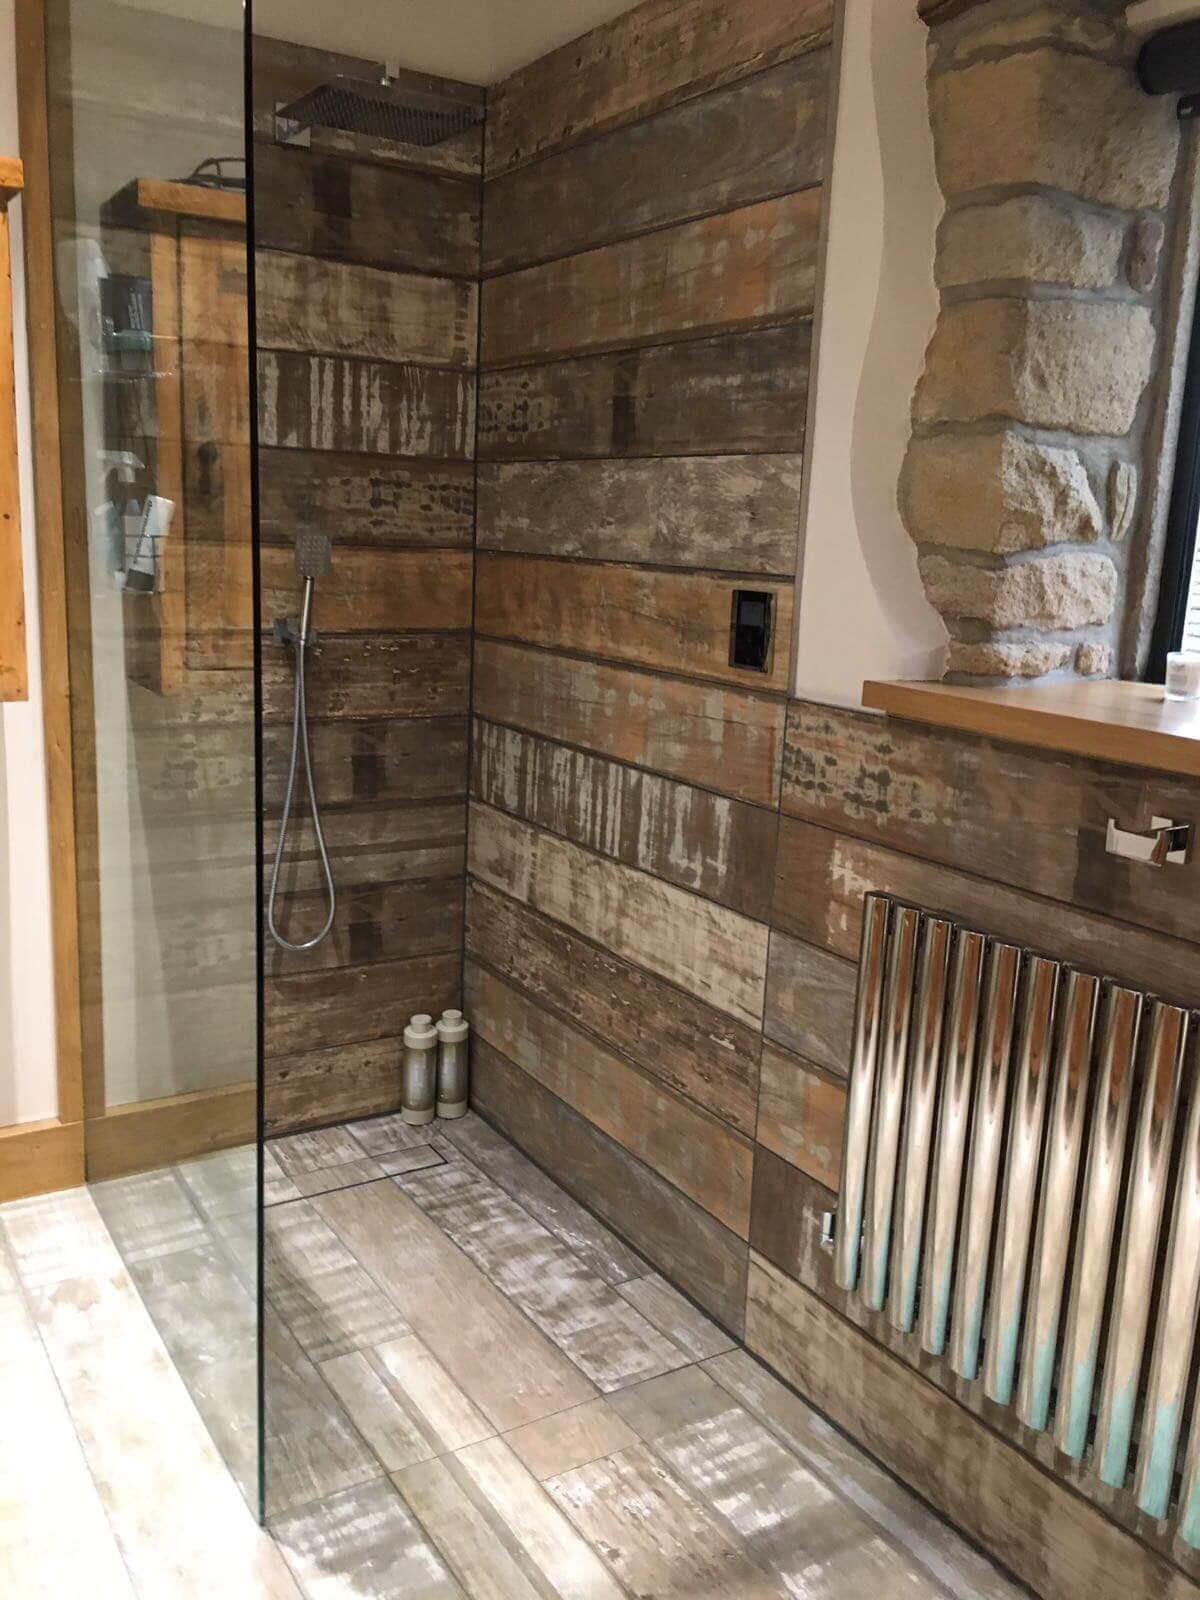 Domestic projects uk harp ceramics impy wet room with linear inserted tile trap tray that hides the waste and looks like one floor wood effect plank wall and floor tiles and wood embossed dailygadgetfo Image collections